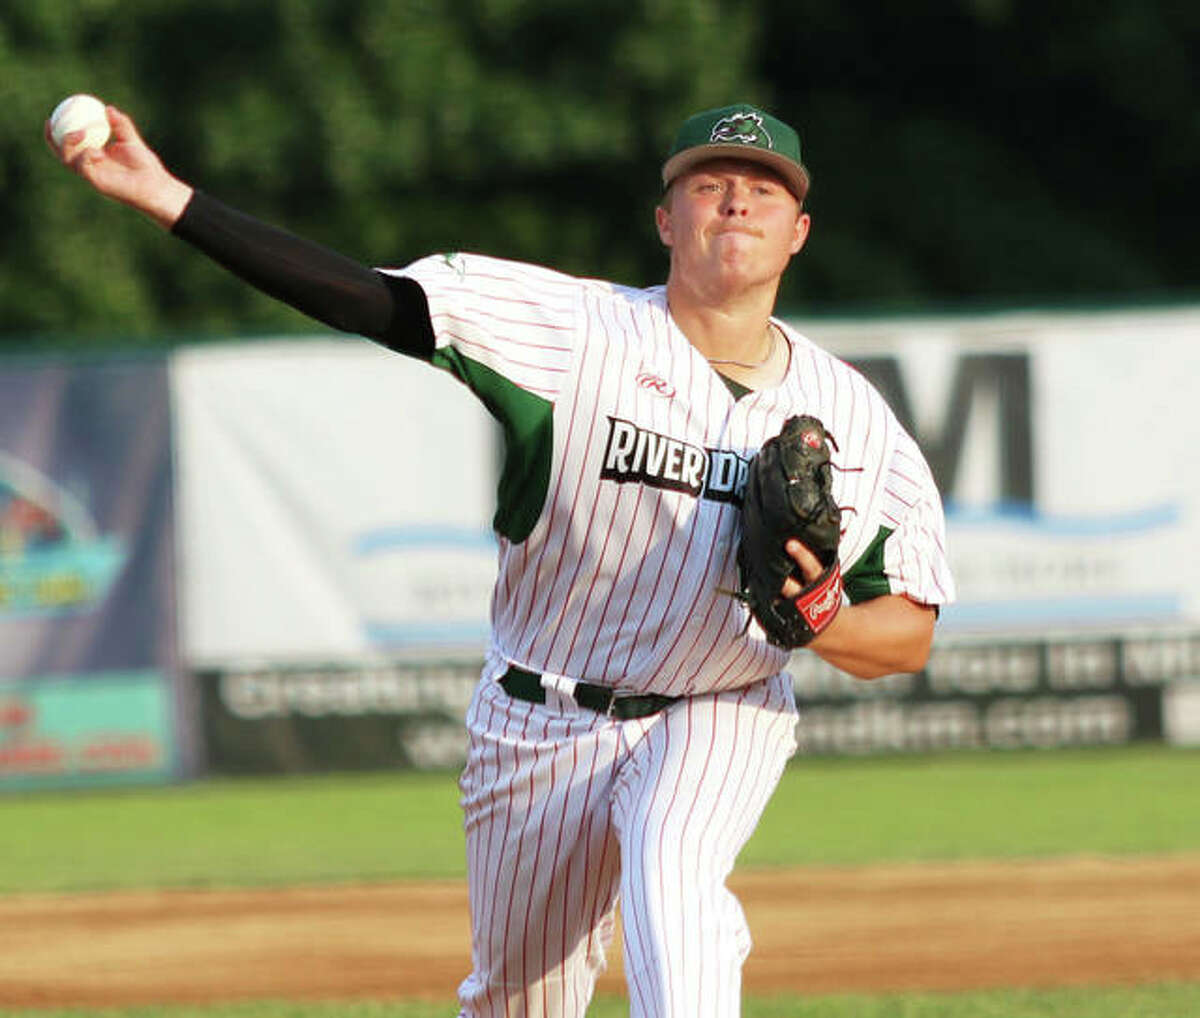 Alton pitcher Adam Stilts got the win on the mound for the River Dragons in Thursday night's 7-2 victory over the cape Catfish in Cape Girardeau, Mo. He pitched 6.2 innings, scattered 11 hits, allowed two earned runs, struck out one and walked two.